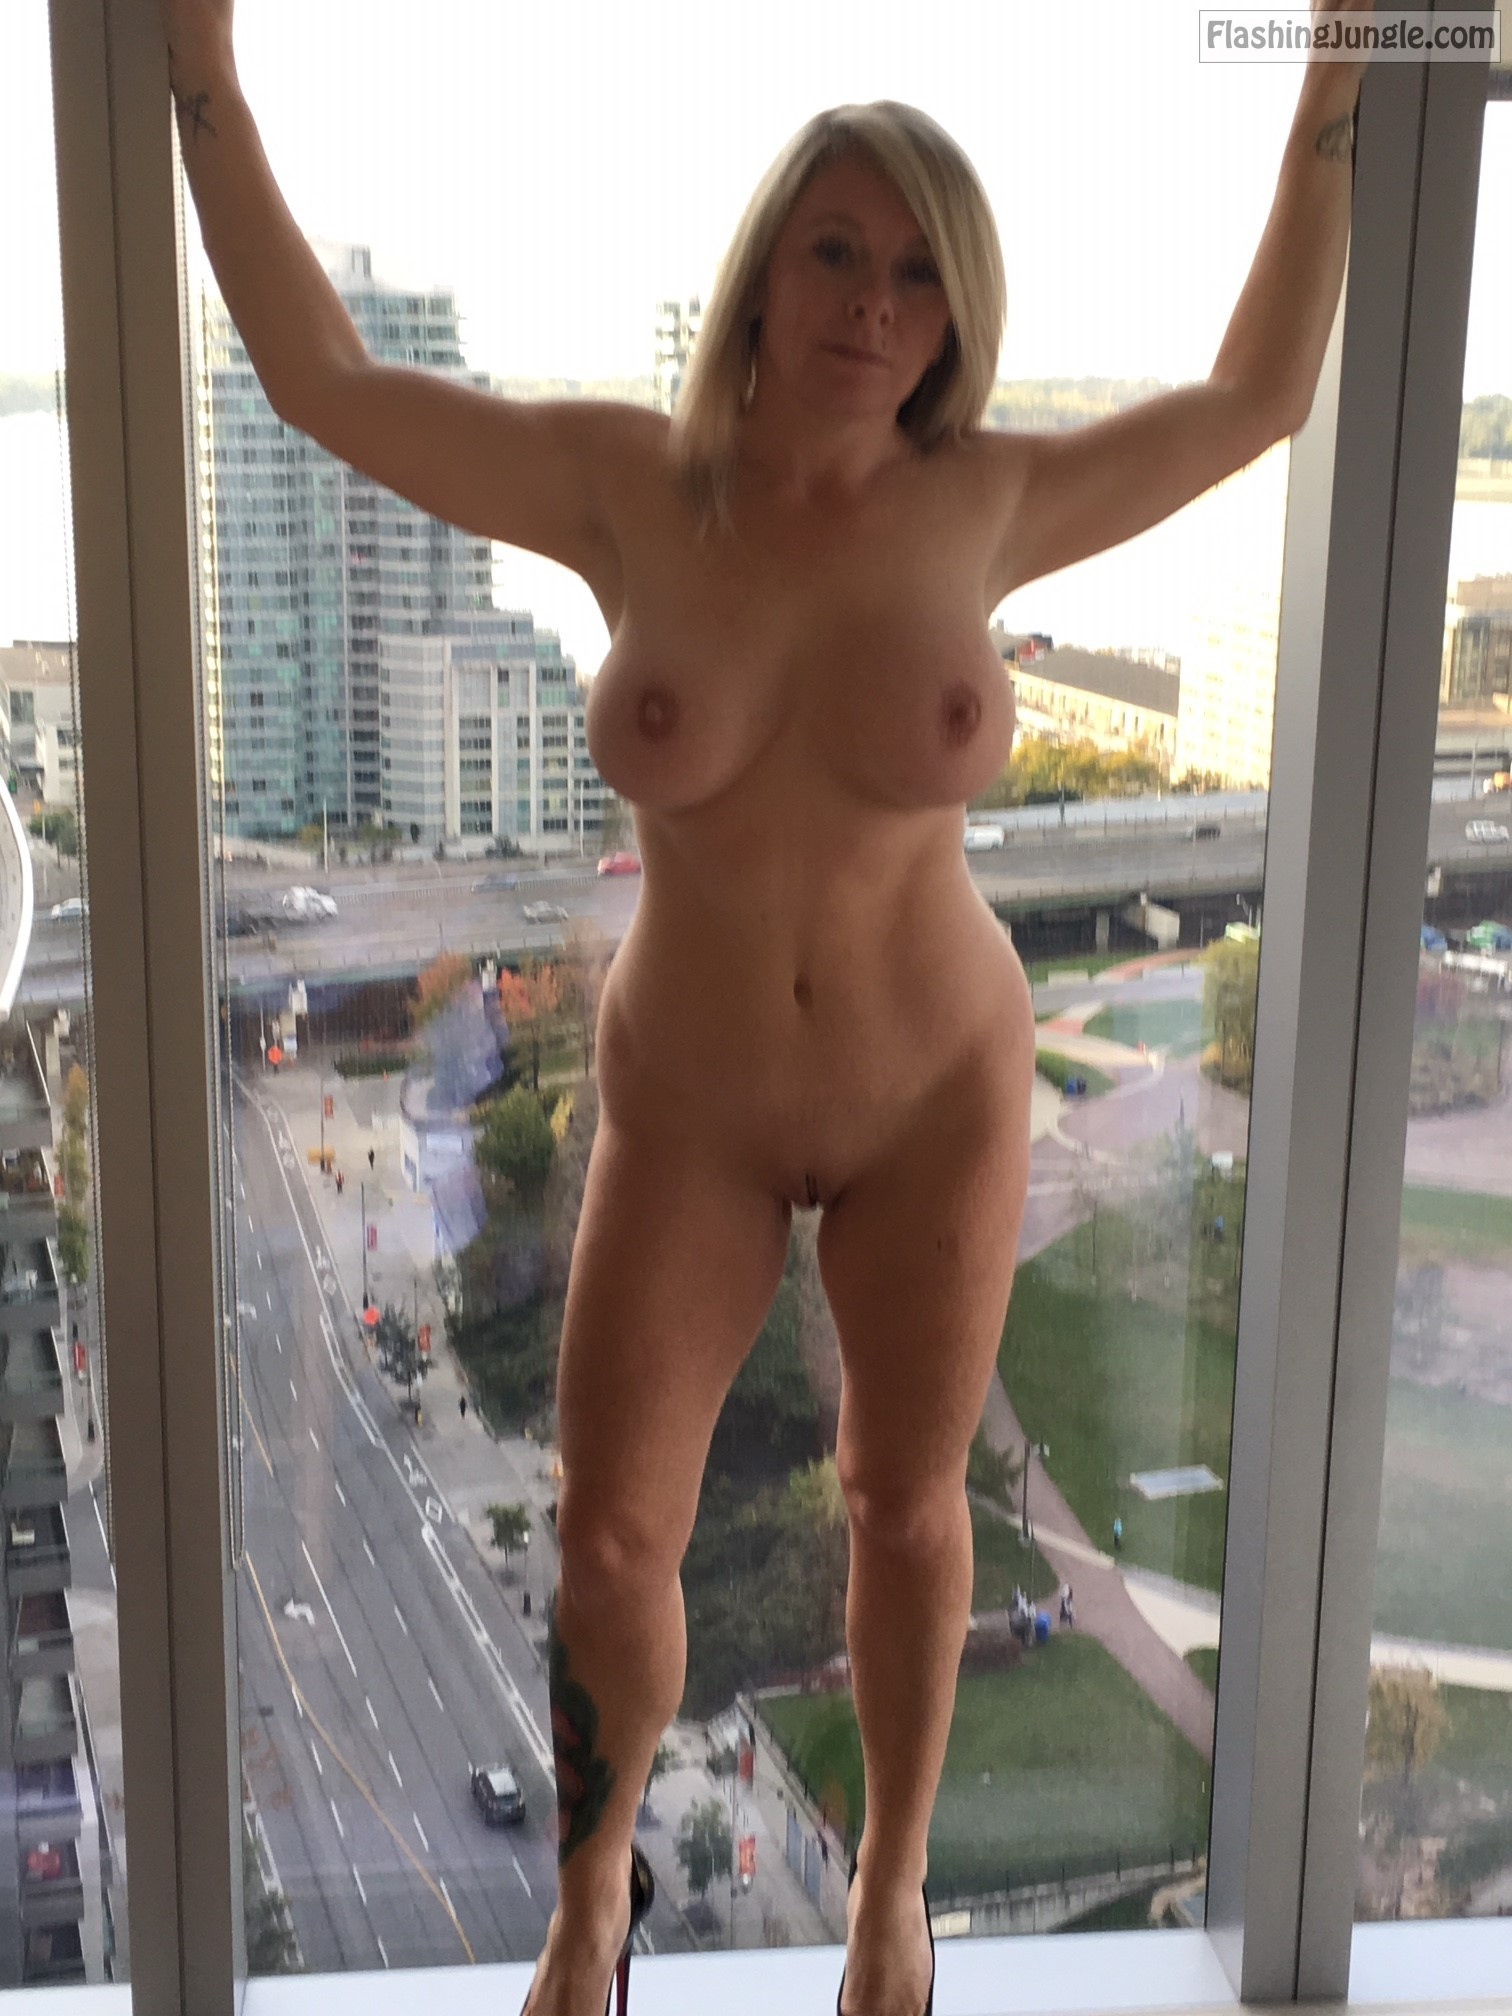 Hotwife naked on window - @geemanandwoman regards from Toronto